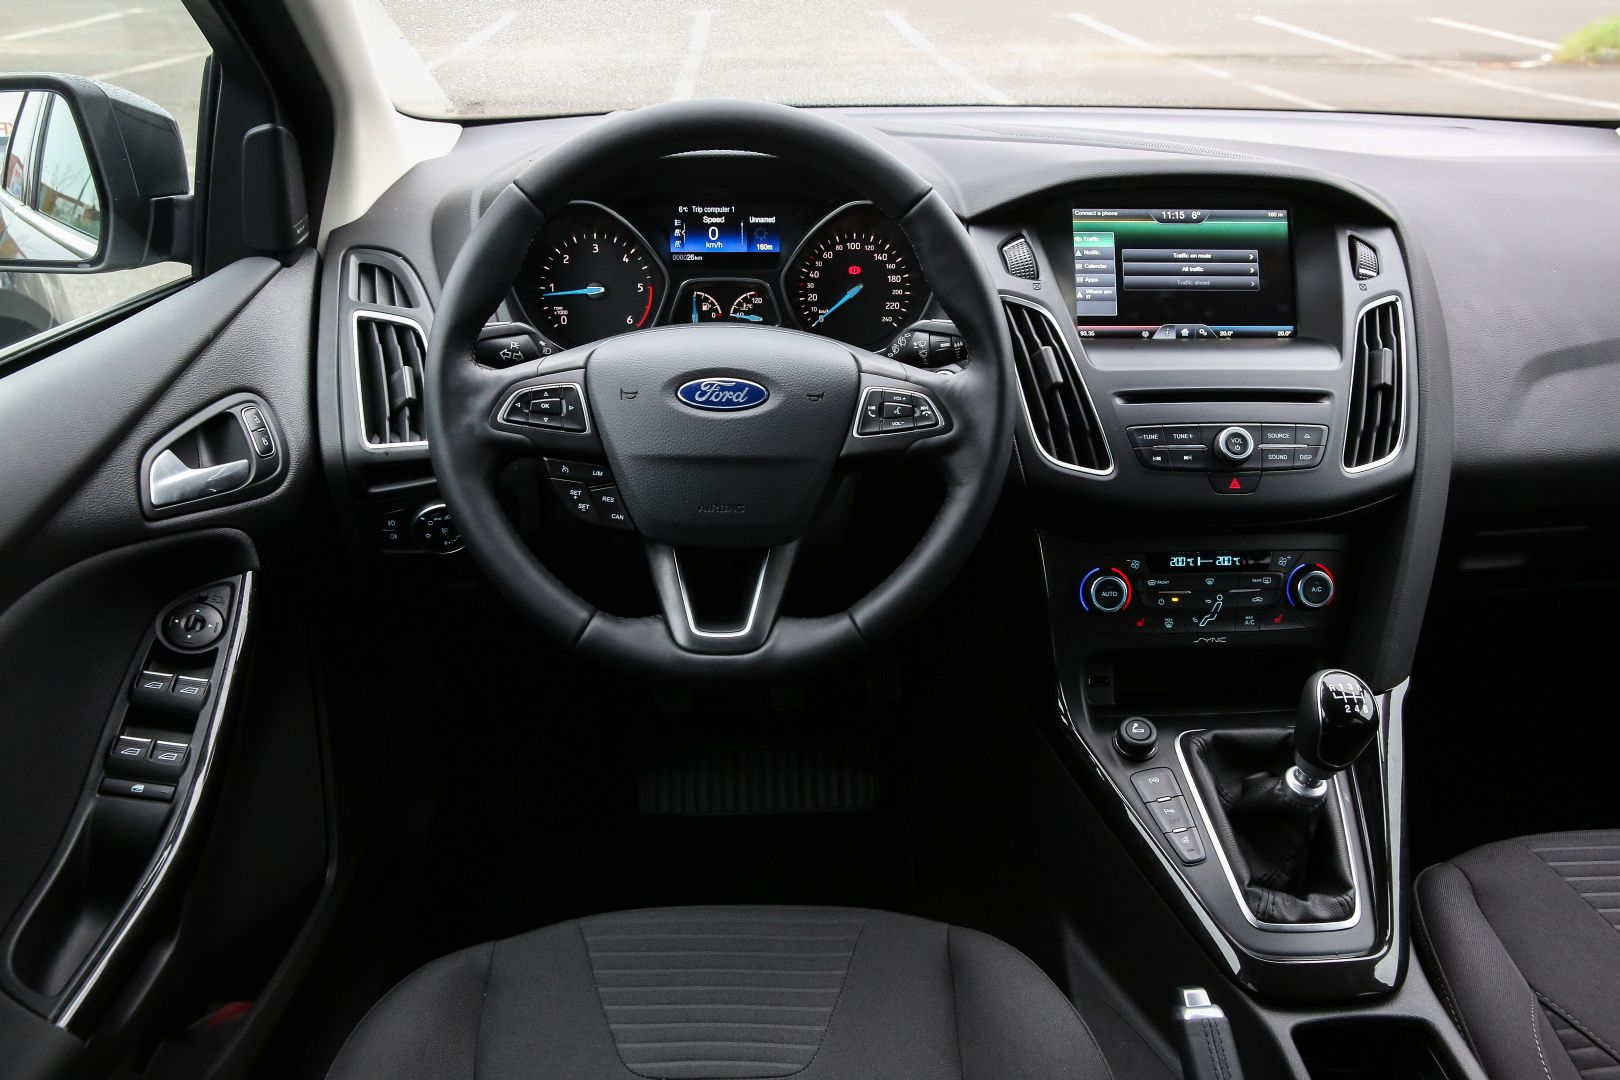 superb-design-of-the-grey-dash-ideas-with-black-steering-wheels-ideas-as-the-ford-focus-facelift-2015-interior